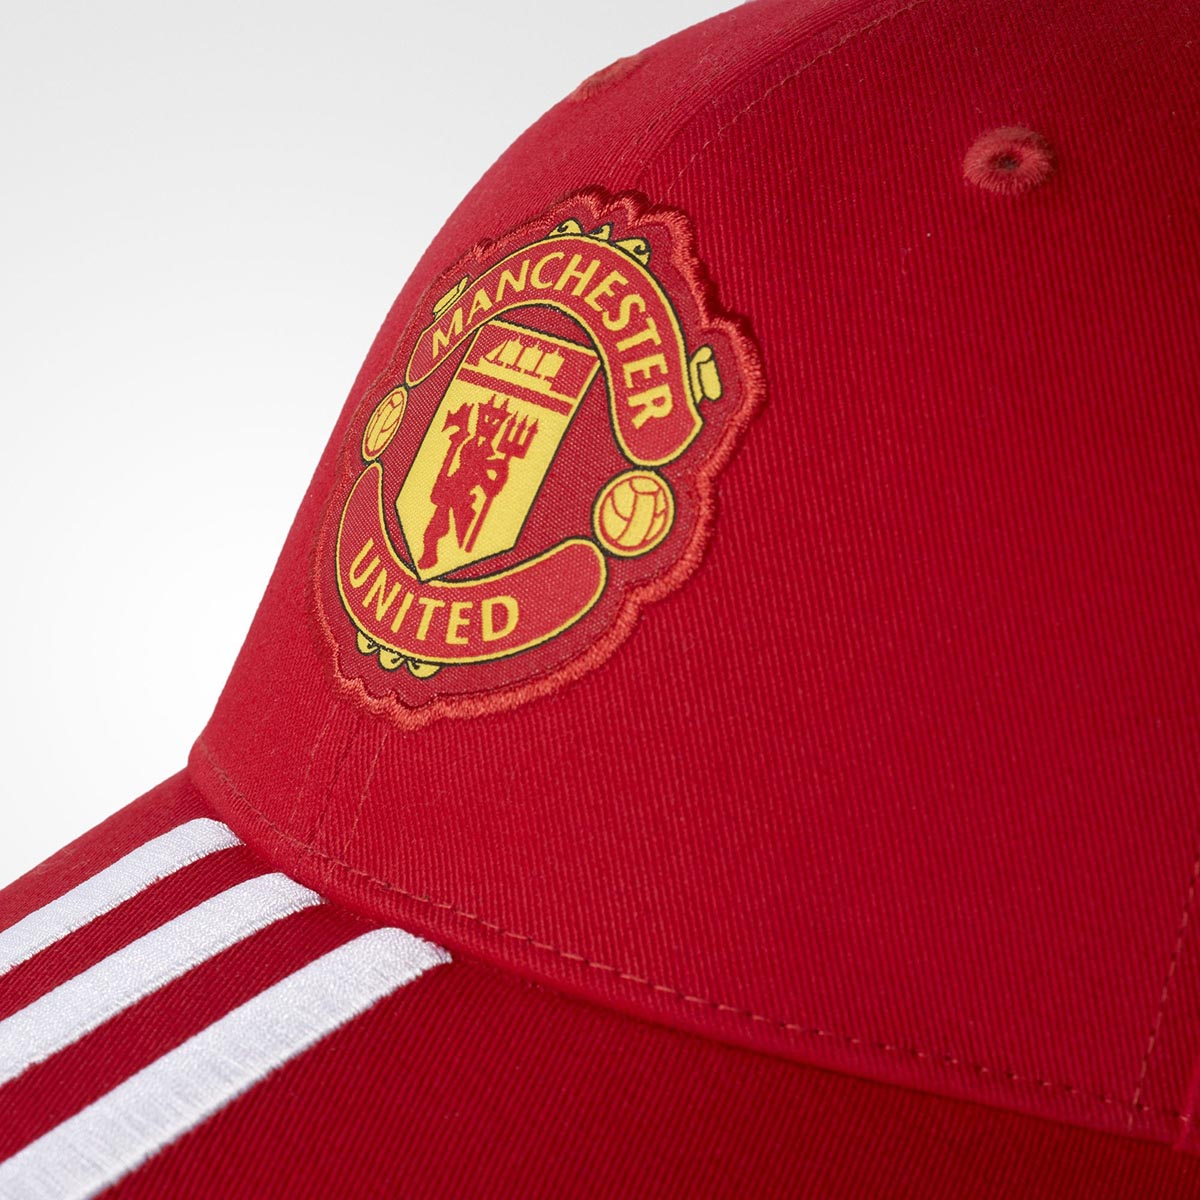 Bone Manchester United FC 3 - Stripes